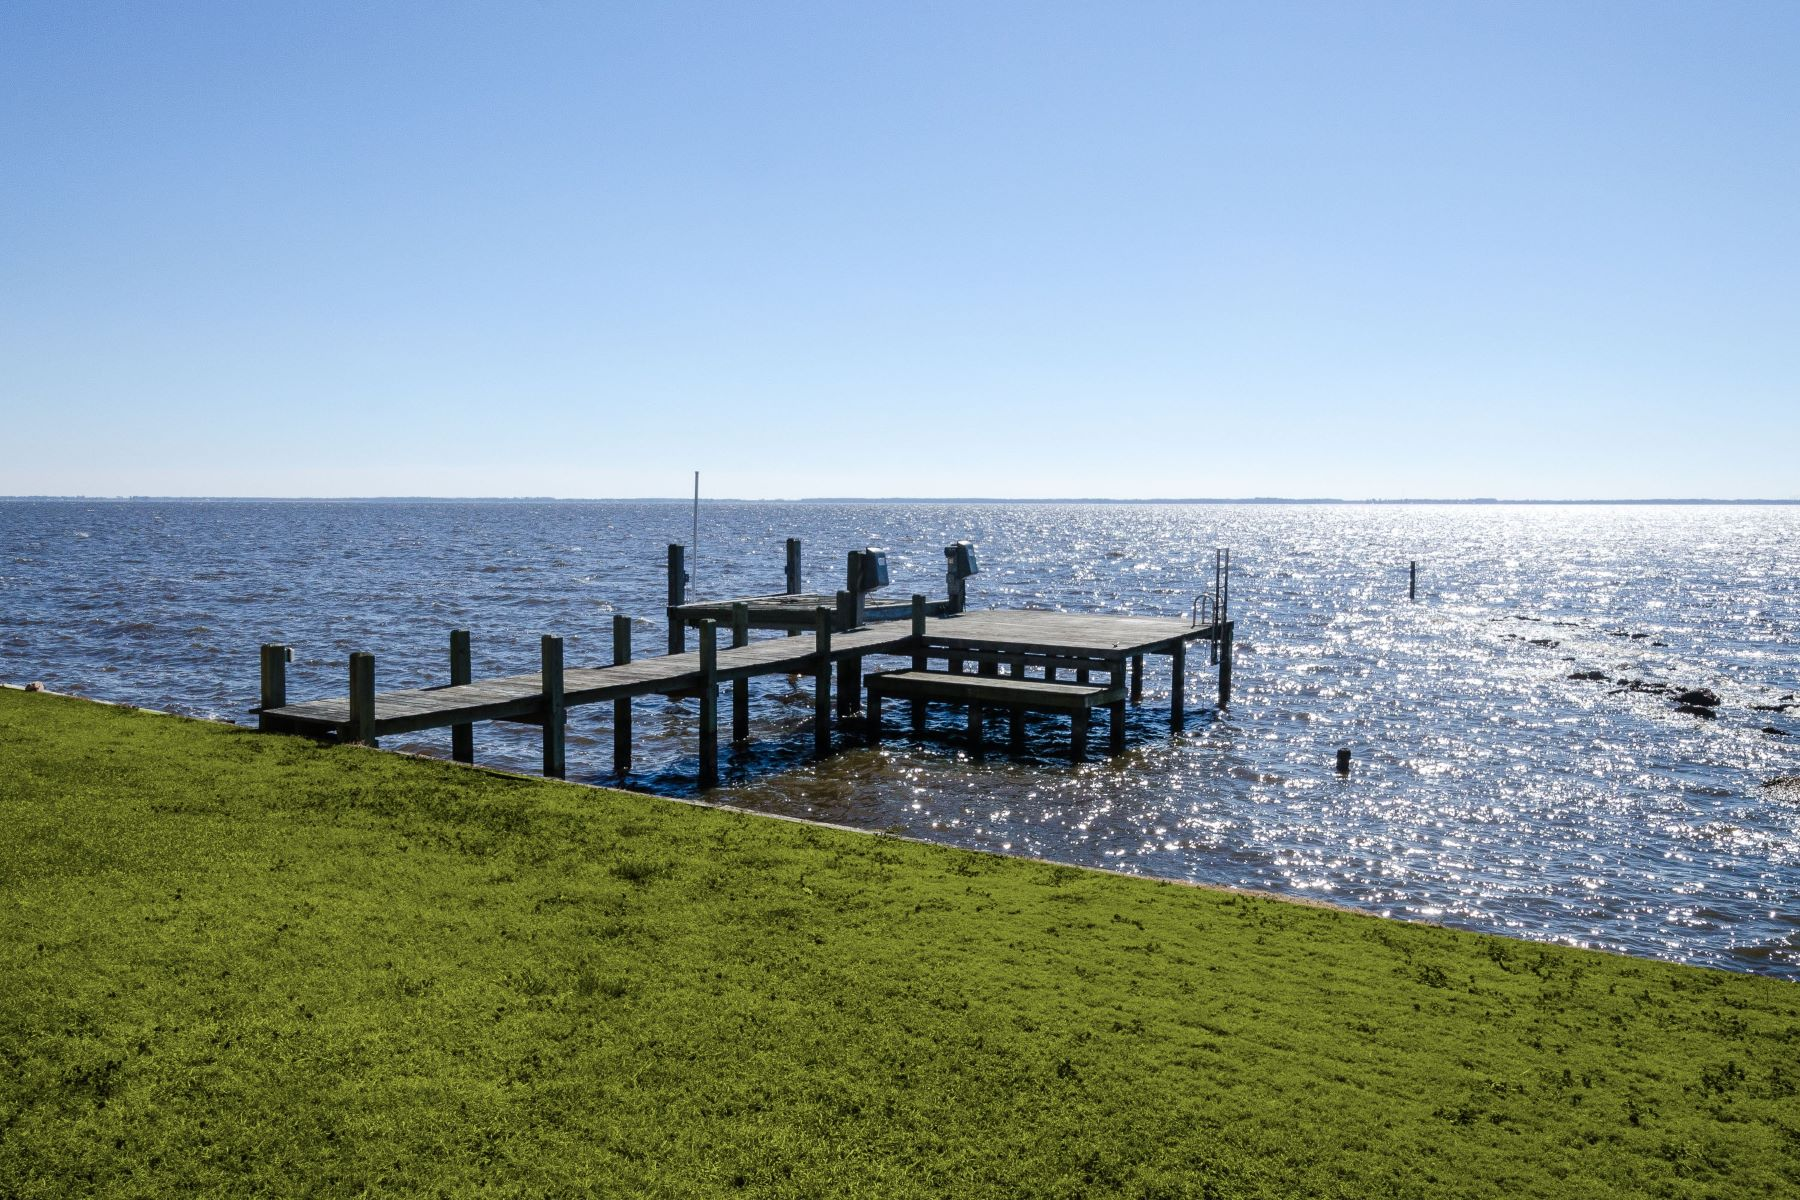 Additional photo for property listing at STUNNING SUNSETS ON THE SOUND! 116 Horniblow Pt Rd Edenton, North Carolina 27932 United States